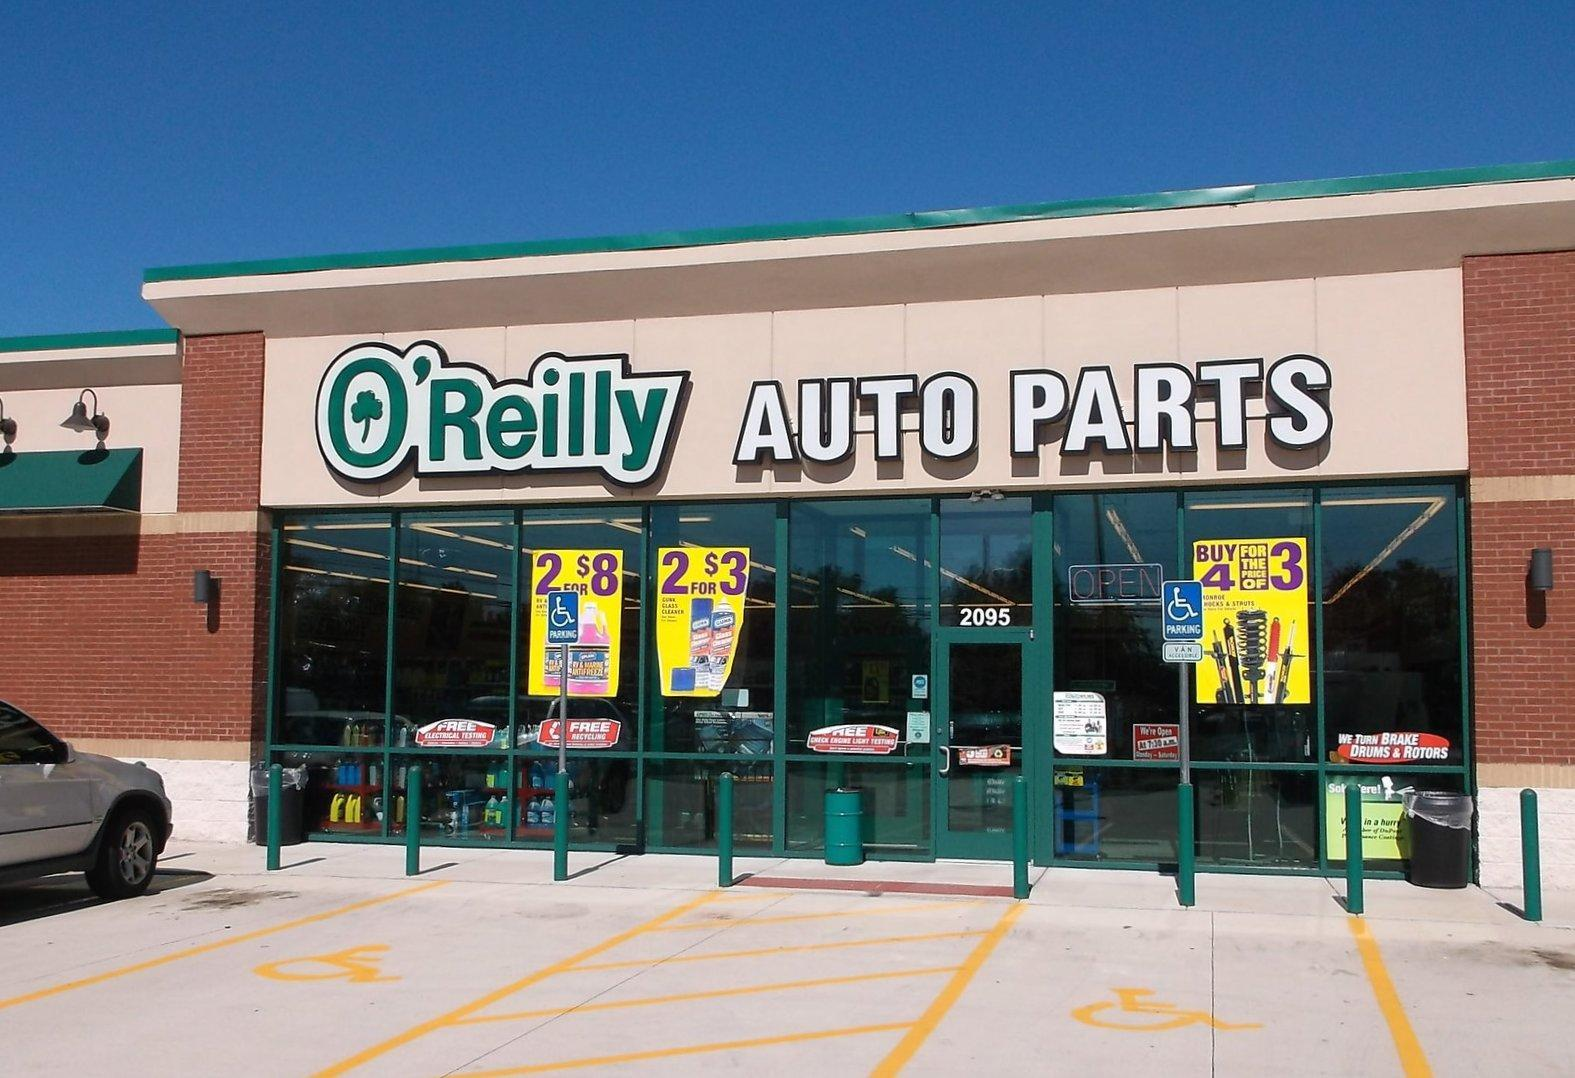 O'Reilly Auto Parts Coupons near me in Sterling Heights ...